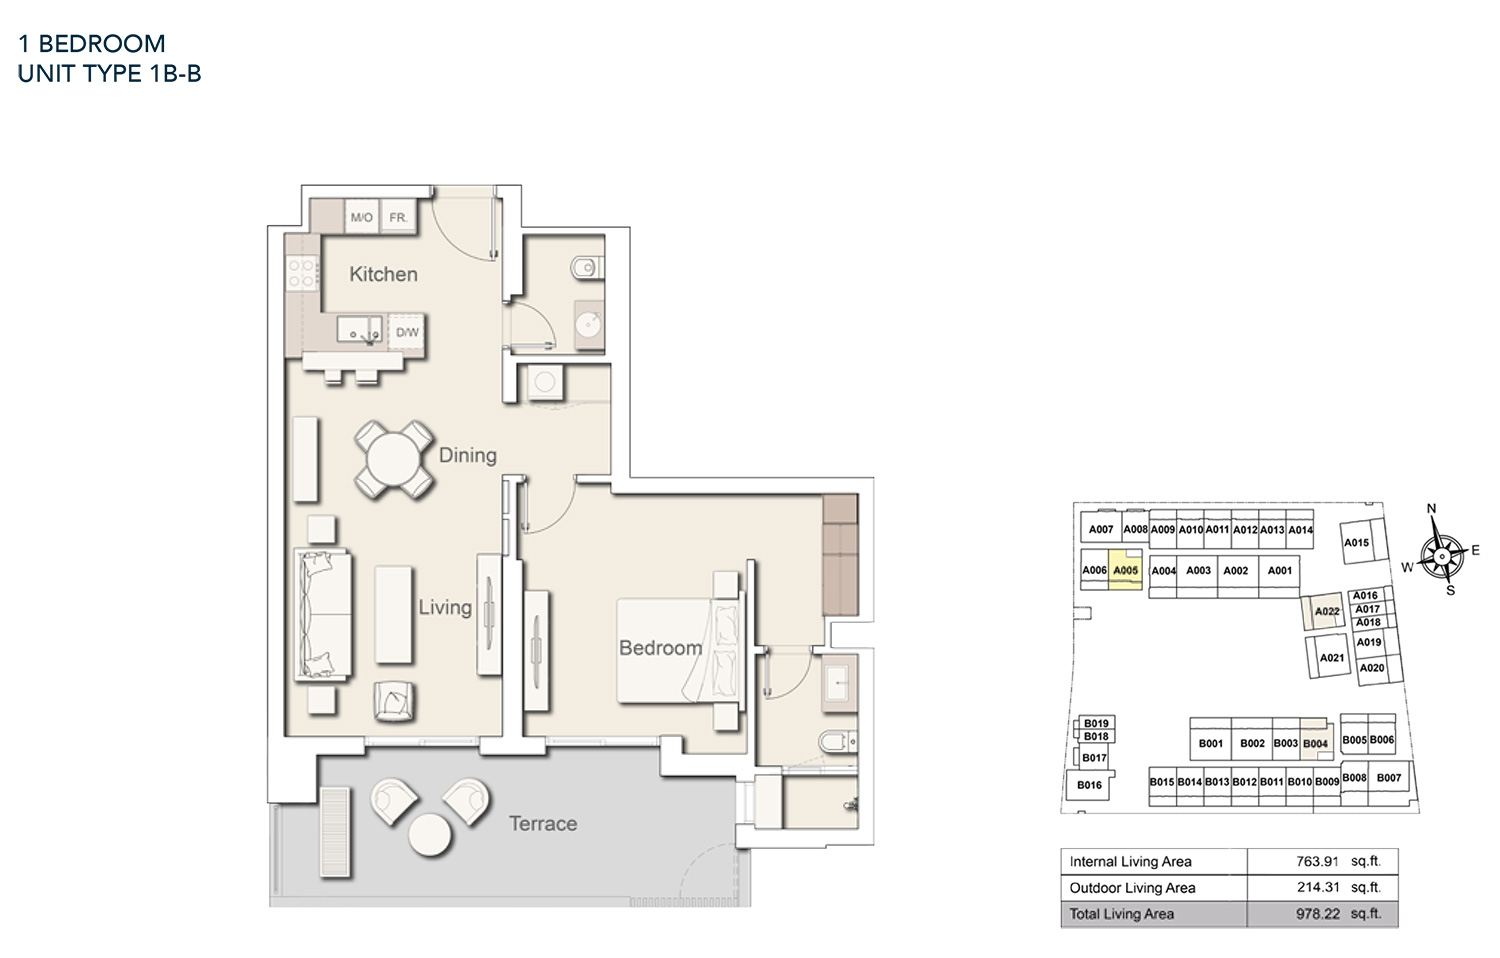 1 Bedroom  Unit Type - 1B B, Size 978.22 sq.ft.